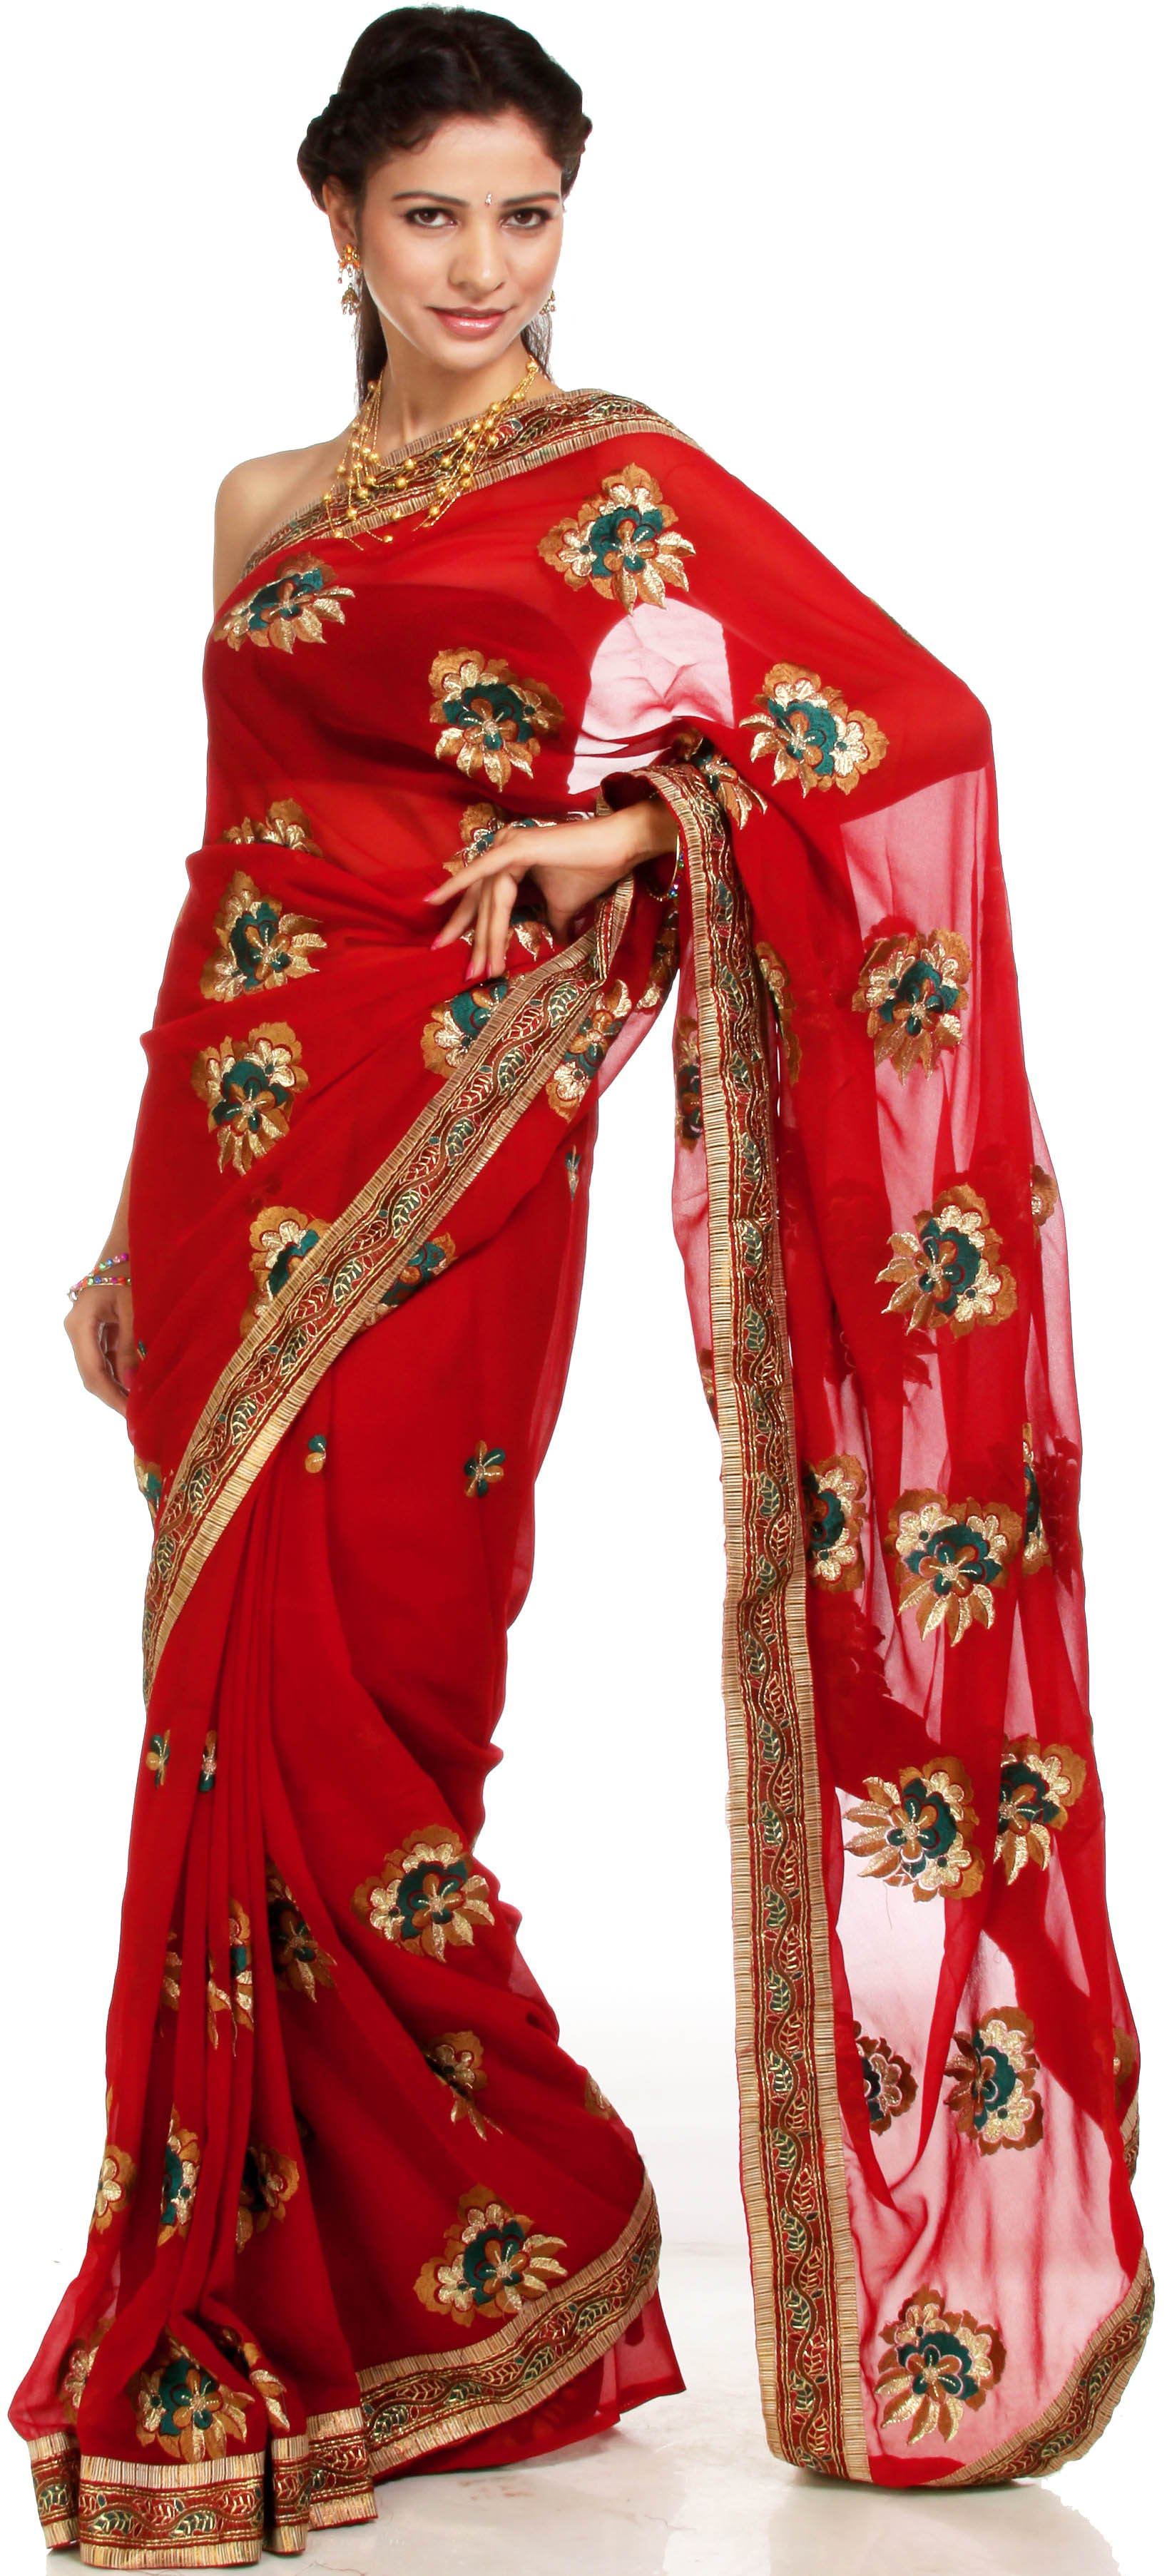 Garnet Red Sari With Large Ari Embroidered Flowers